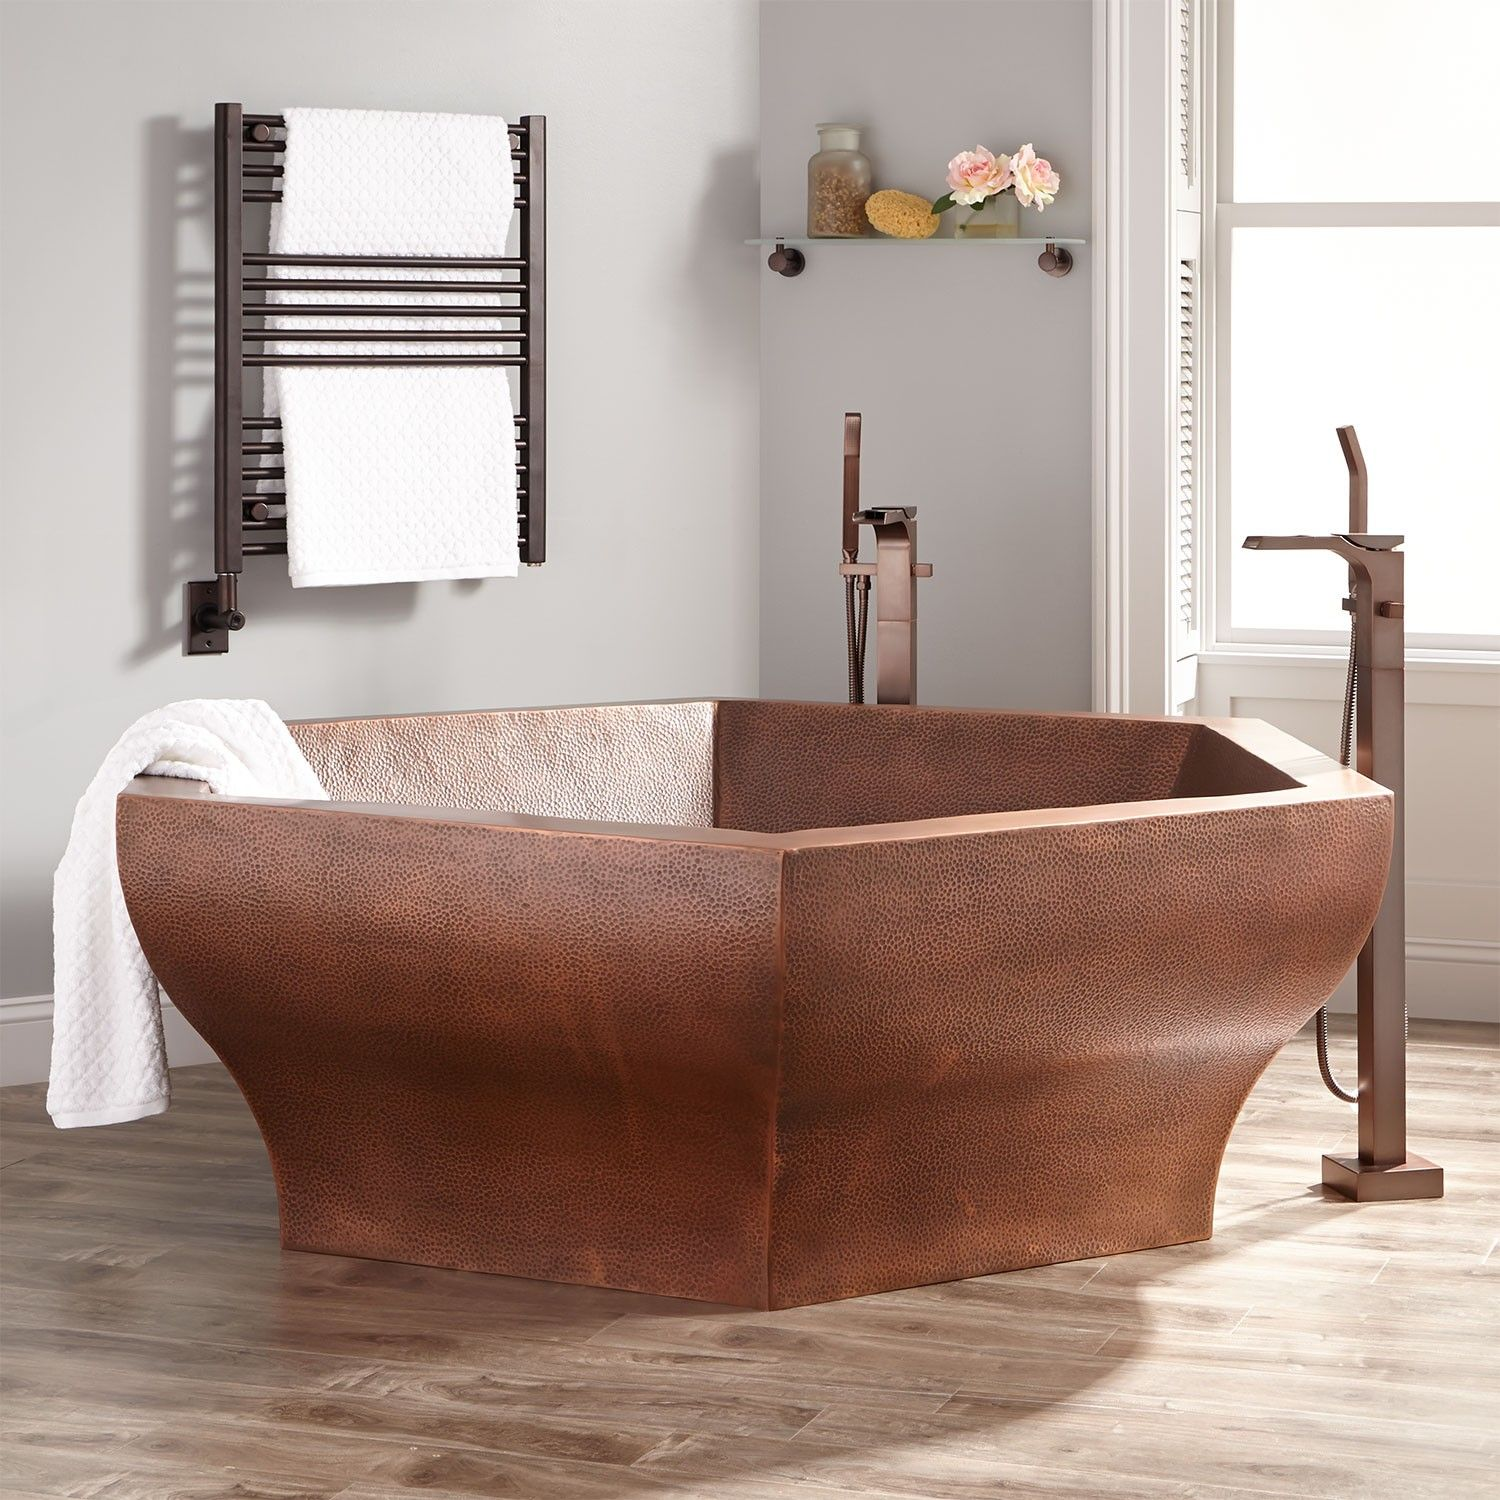 73 Riley Hexagon Hammered Copper Two Person Soaking Tub Copper